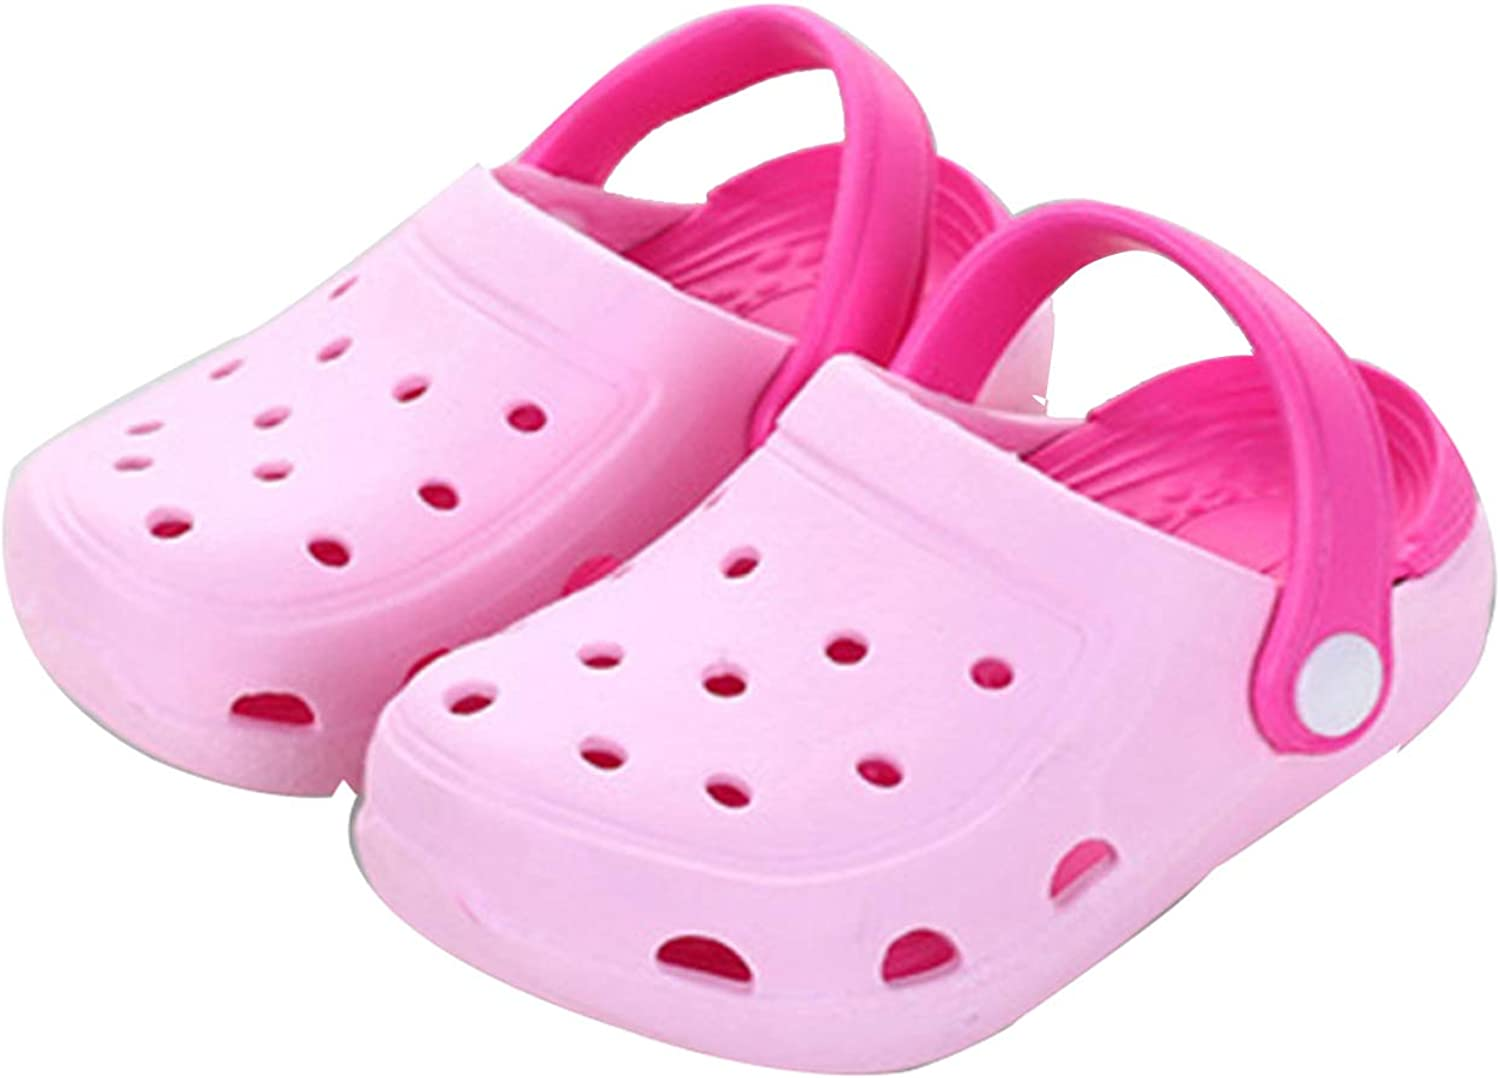 Slippers sandals garden pool shower boys girls Price reduction san Max 69% OFF and slippers